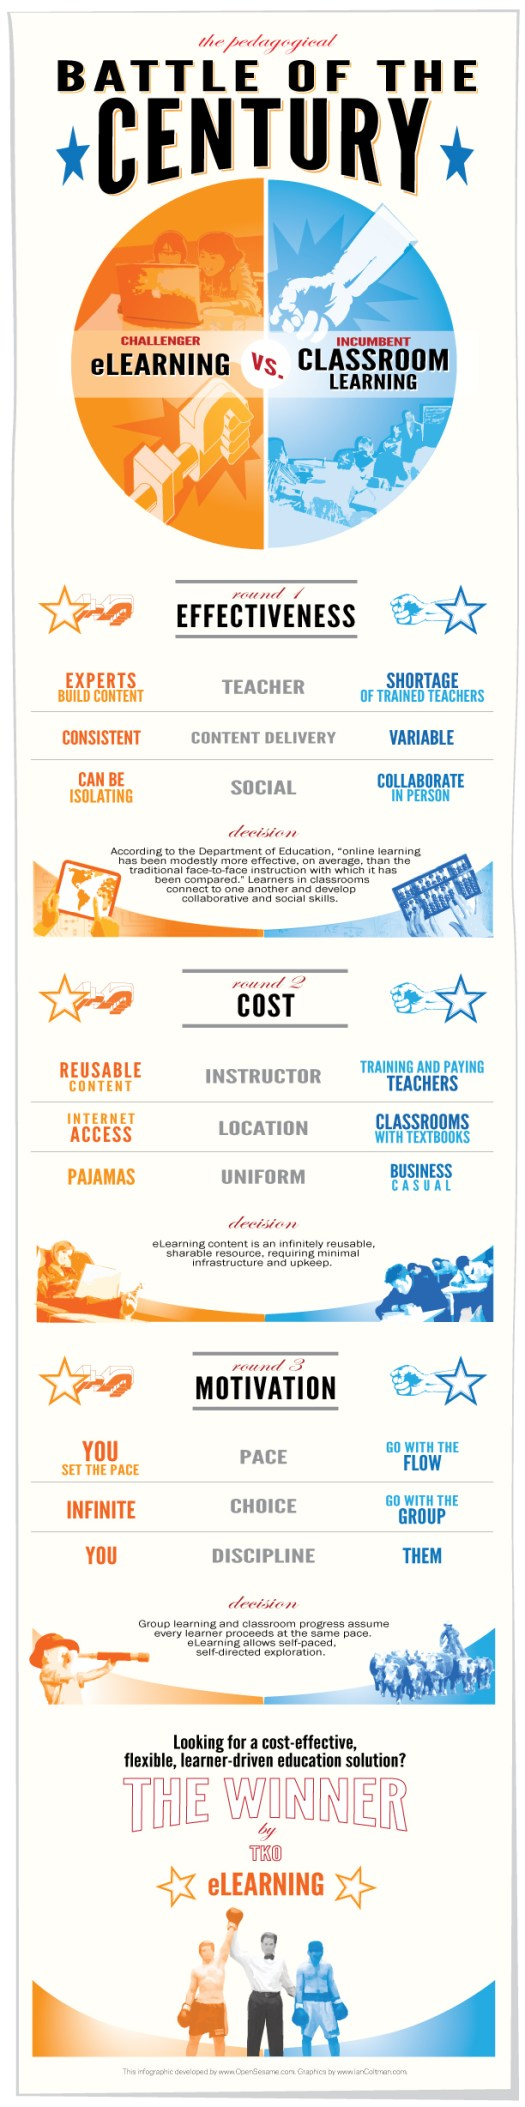 The Pedagogical Battle of the Century Infographic